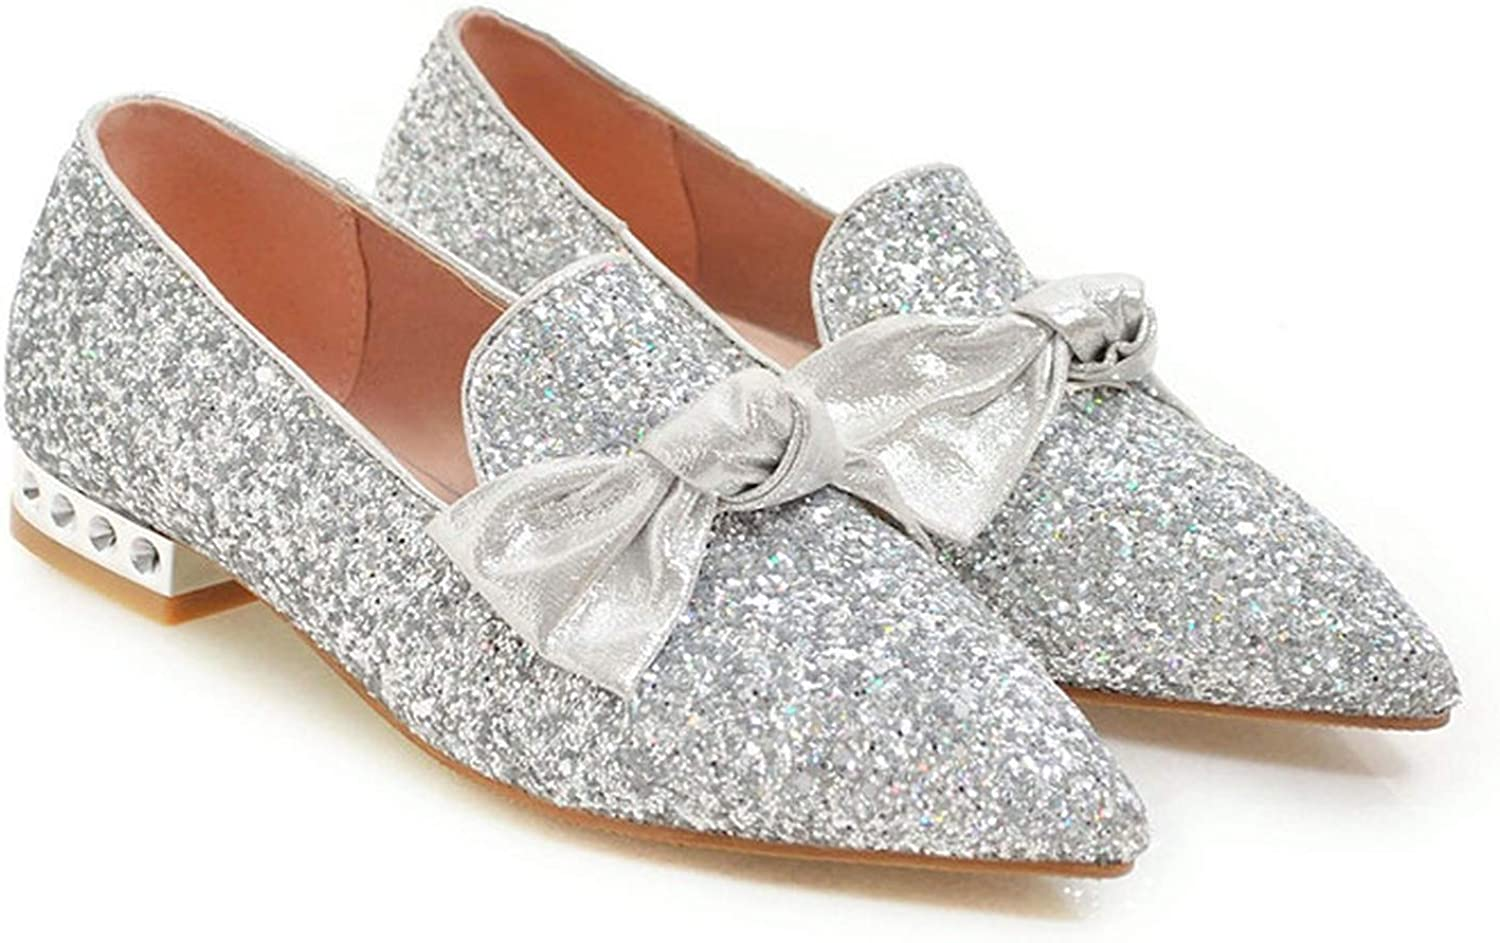 Rseobl Women Loafers shoes Spring Flats Bow Bling Flat Party shoes Glitter Pointed Toe shoes Female New Sliver Plus Size 34-43